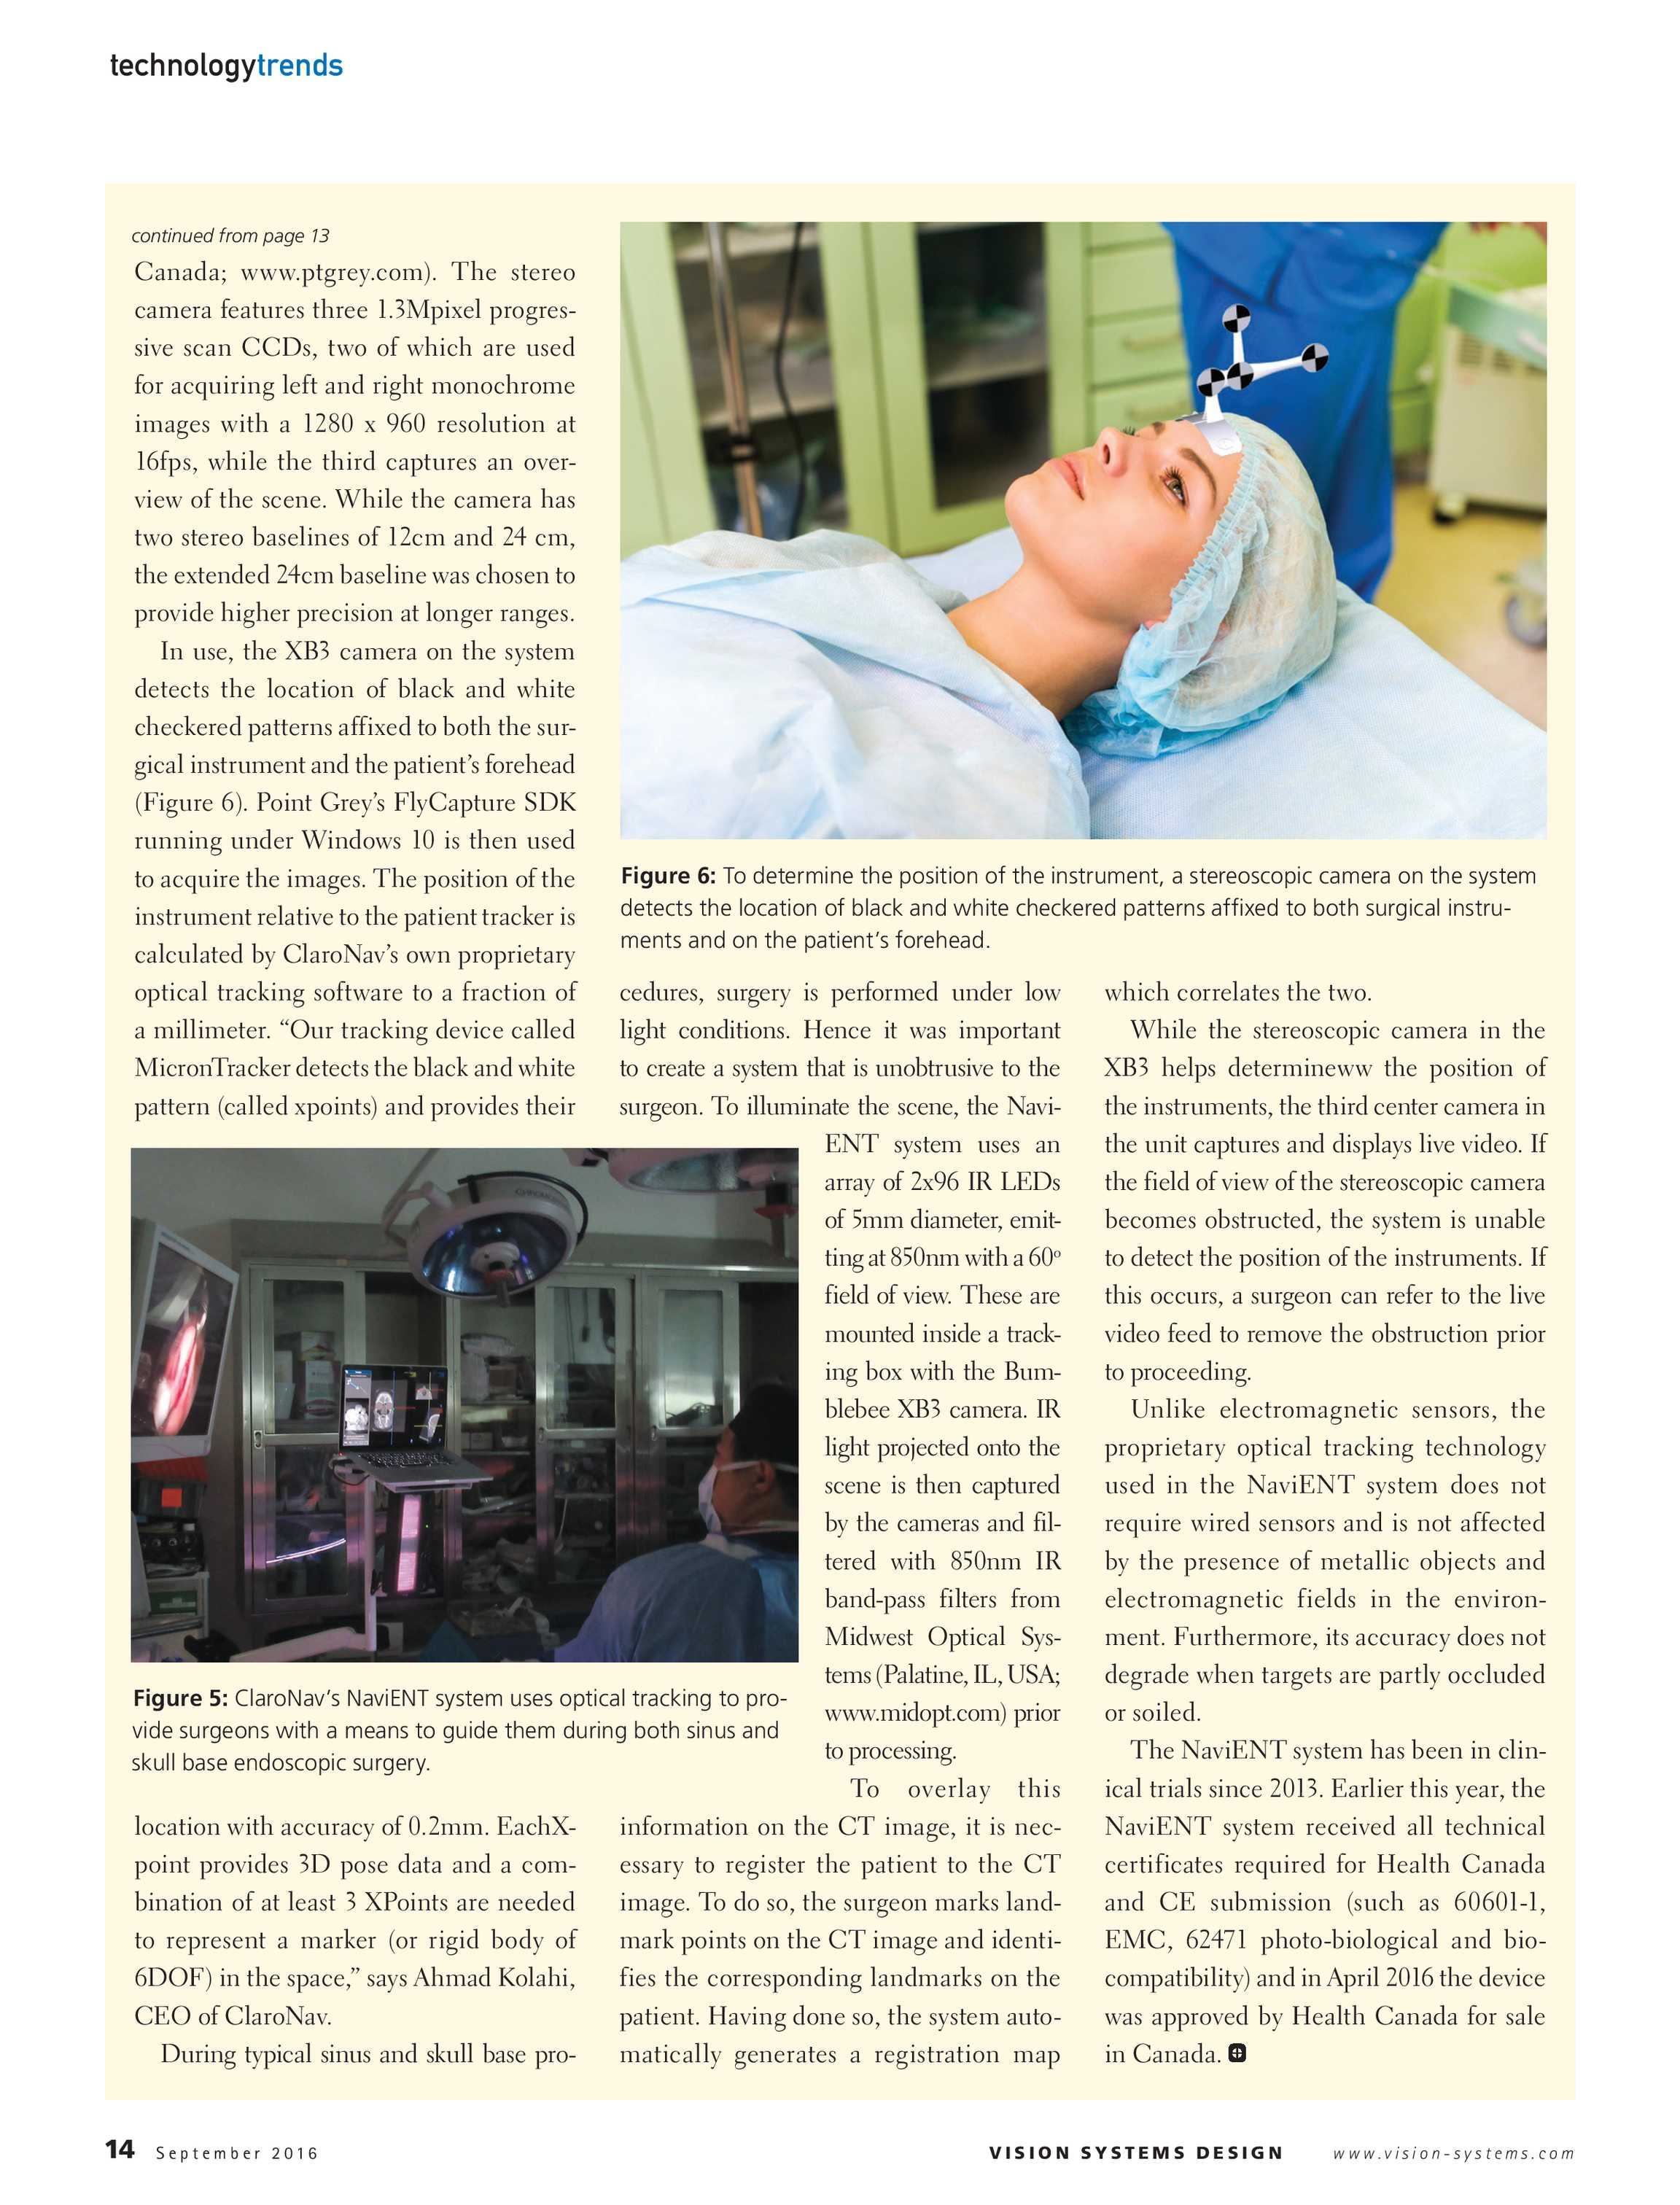 Vision Systems - September 2016 - page 14